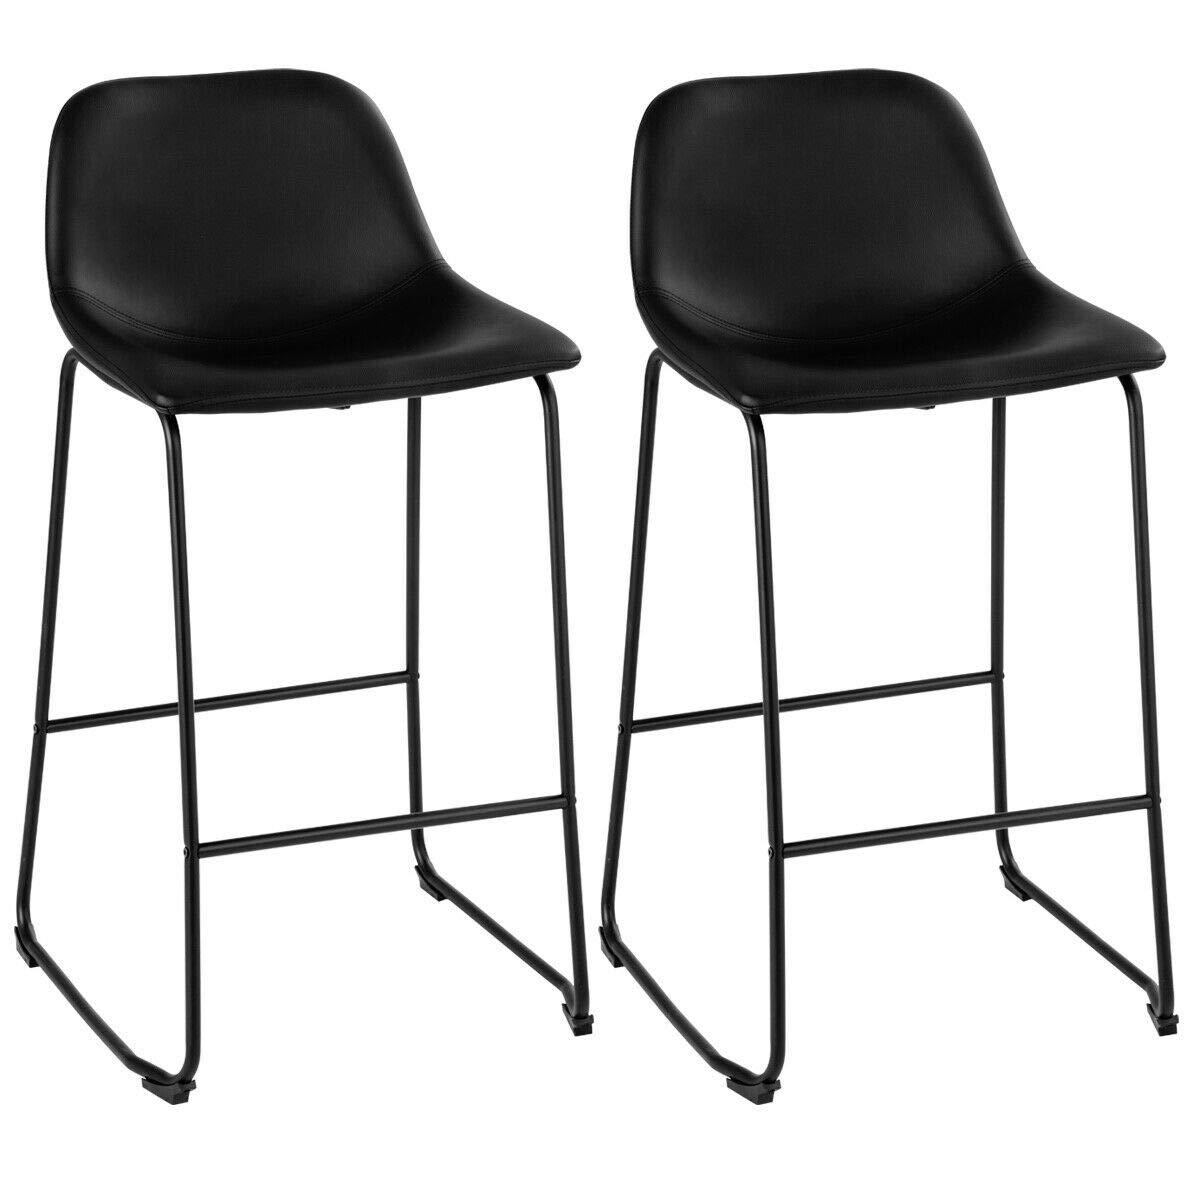 COSTWAY Set of 2 Bar Stools Modern Contemporary PU Leather Bar Height Armless Padded Seat Pub Bistro Kitchen Dining Side Chair Barstools with Metal Legs Black